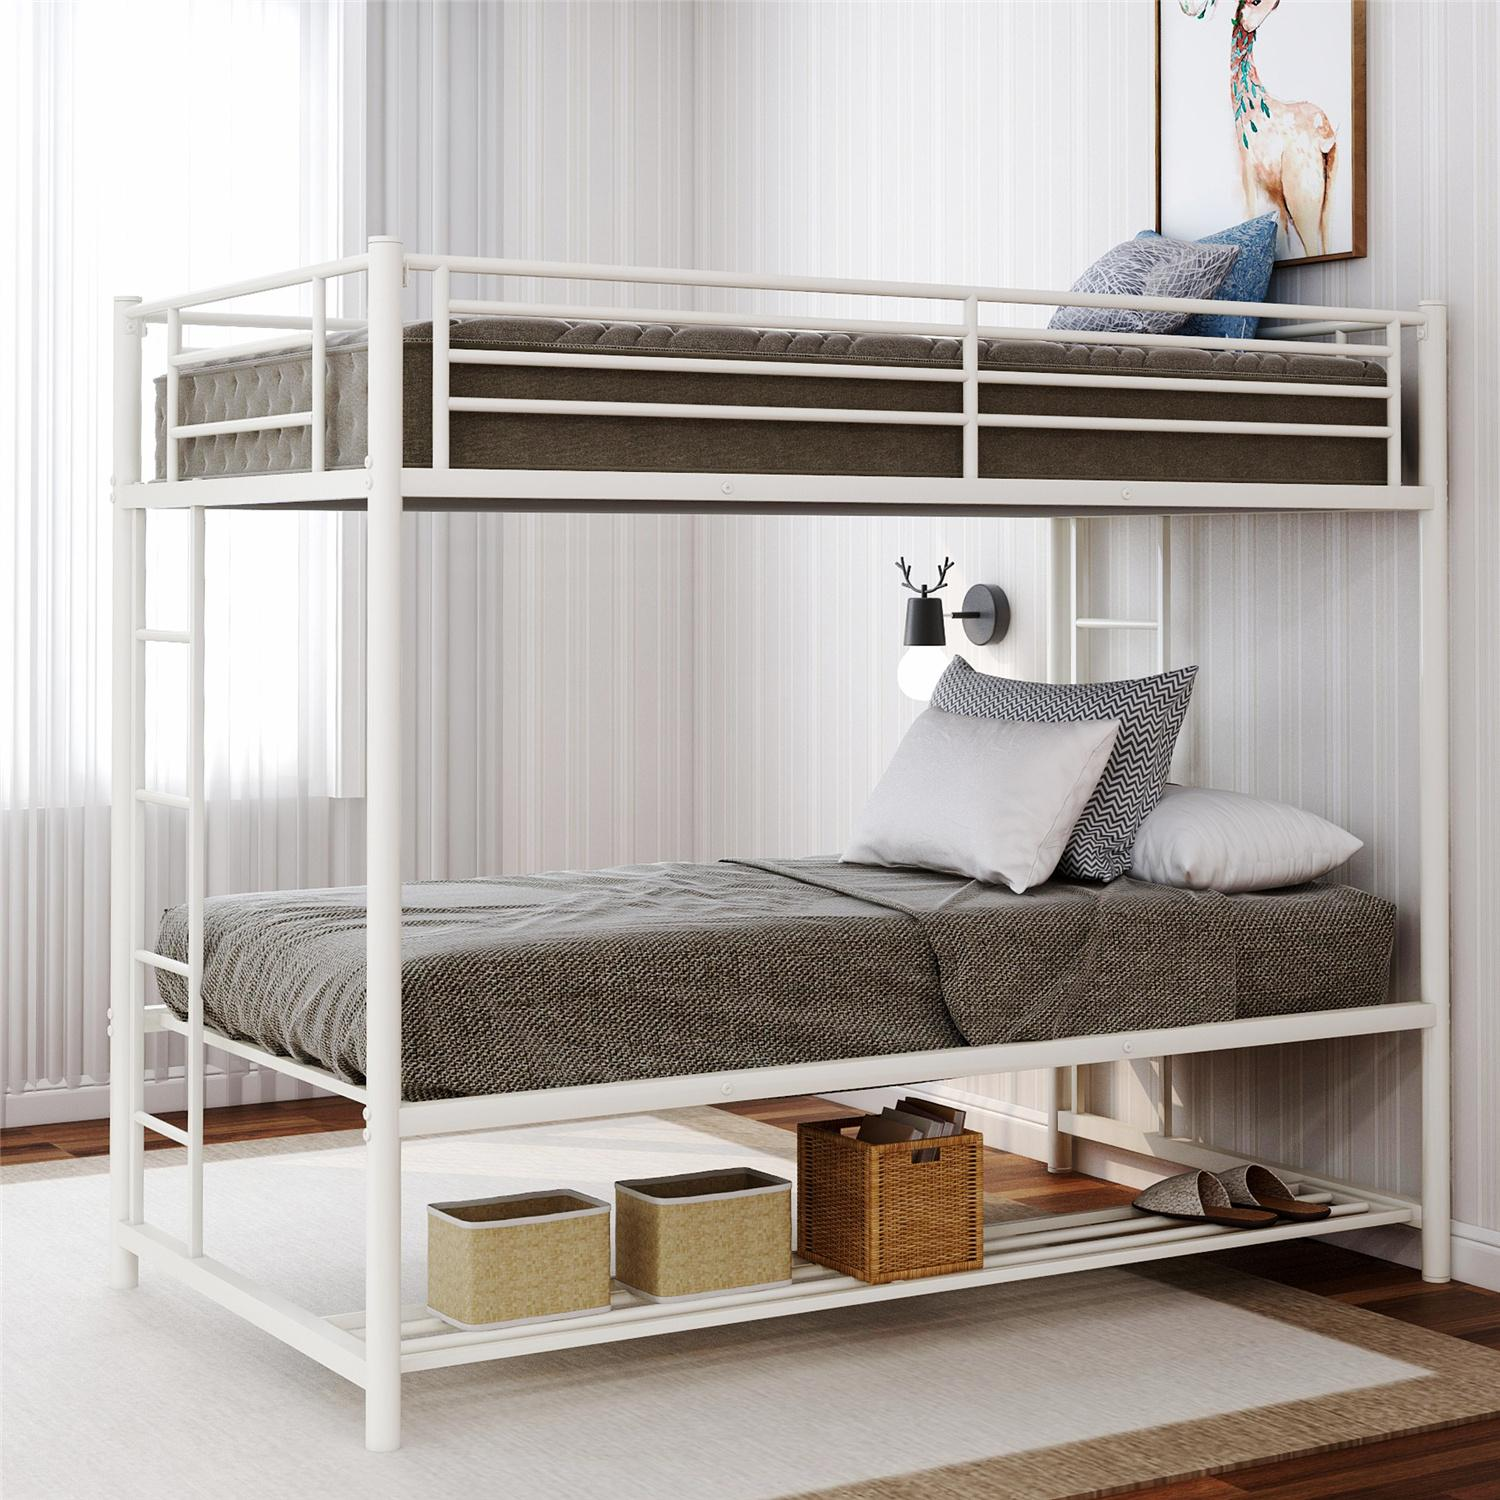 White Kids Bunk Beds Twin Over Twin Bunk Bed With Storage For Kids Teens Modern Metal Bed Frame With 2 Ladders And Guard Rails For Small Spaces No Box Spring Needed